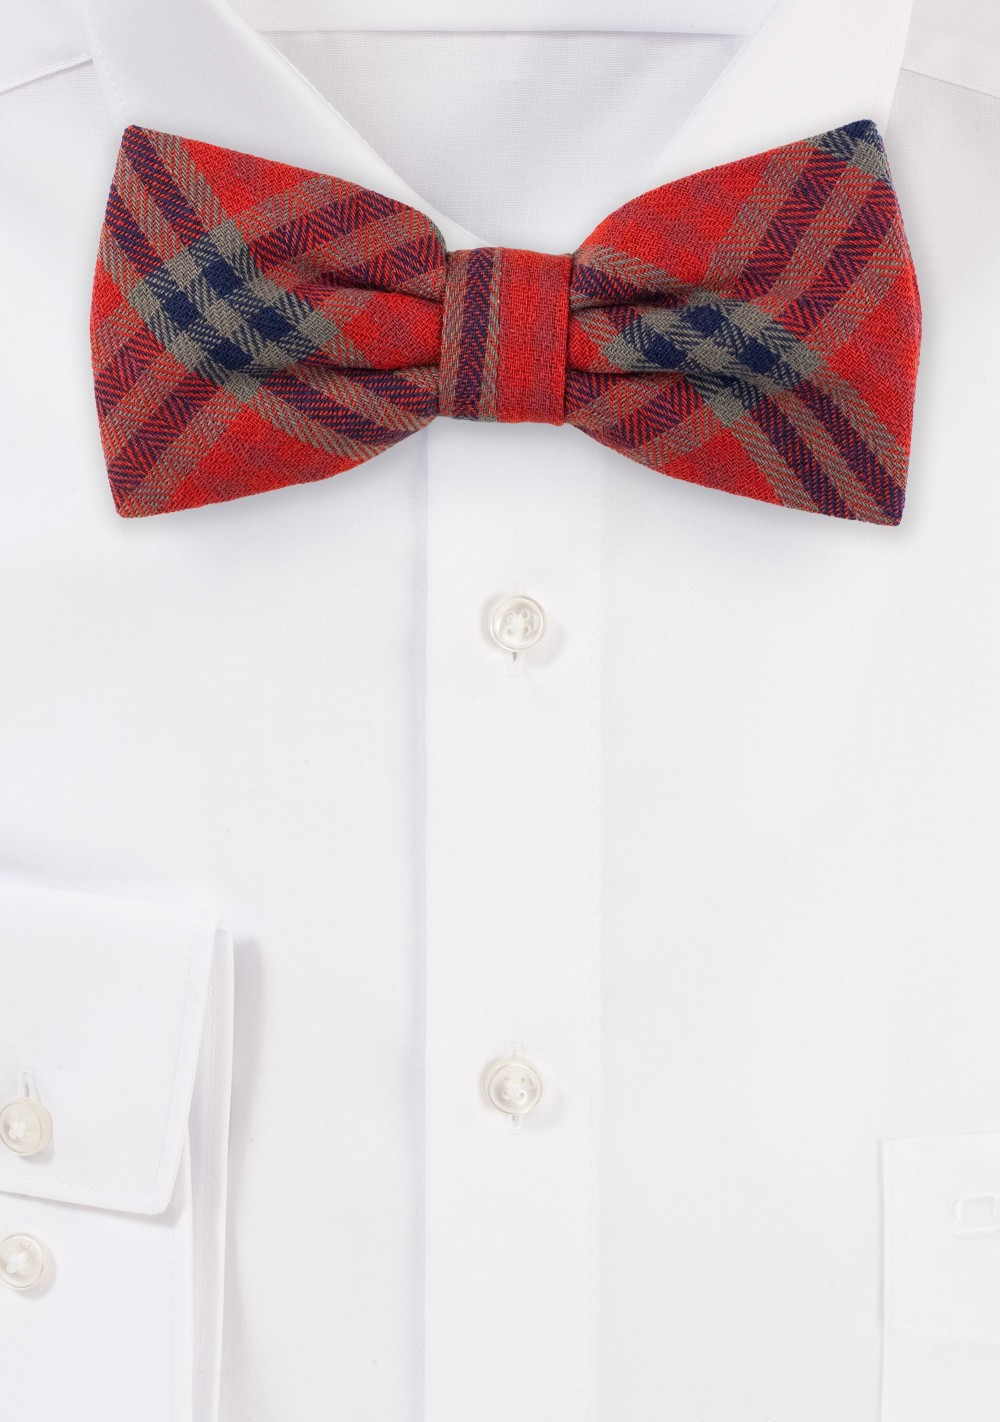 Tartan Plaid Bow Tie in Red and Olive